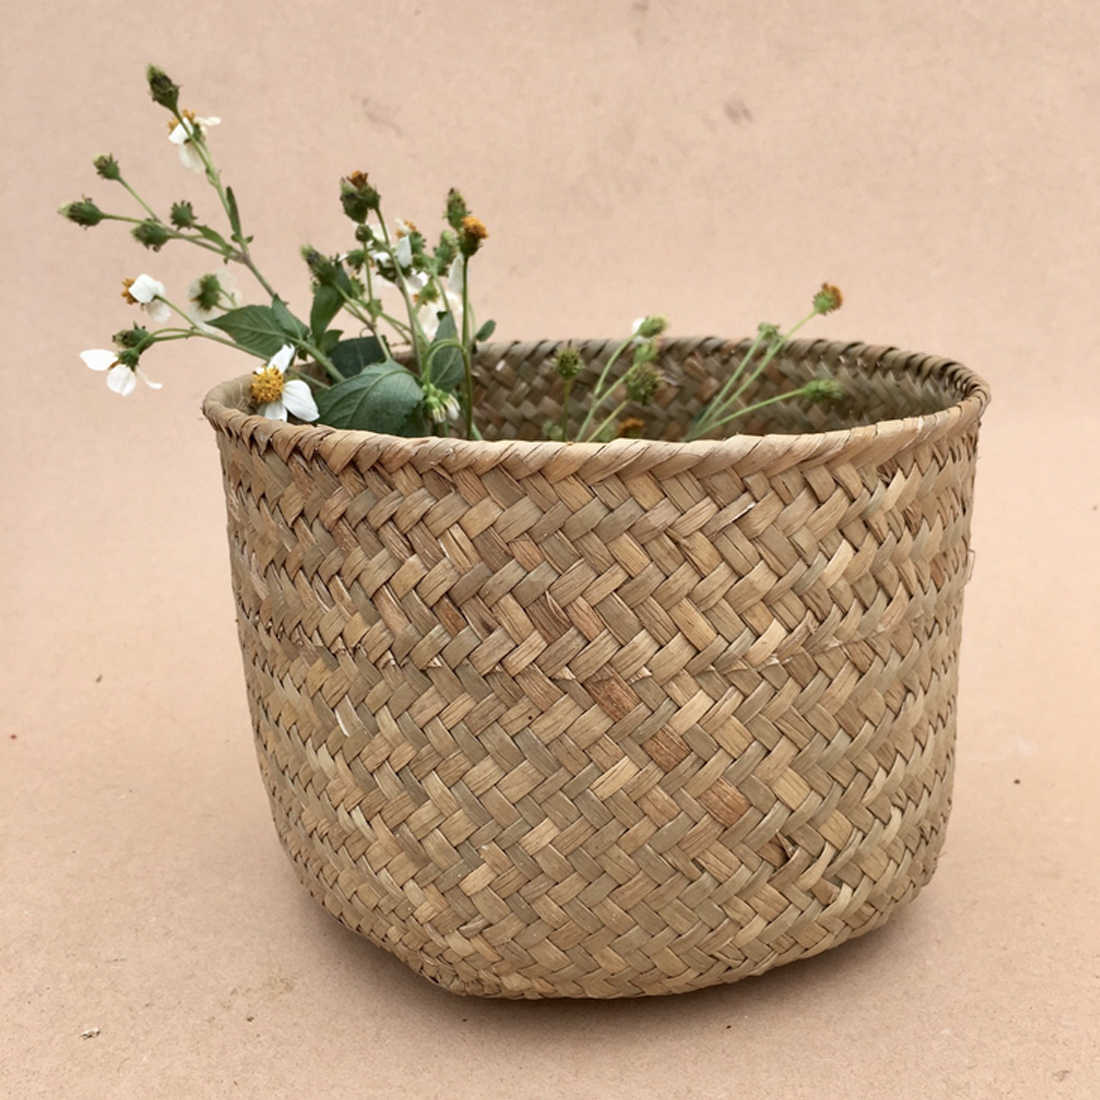 Hanging Flower Pot Planter Woven Dirty Laundry Hamper Storage Basket Toy Collection Holder Case